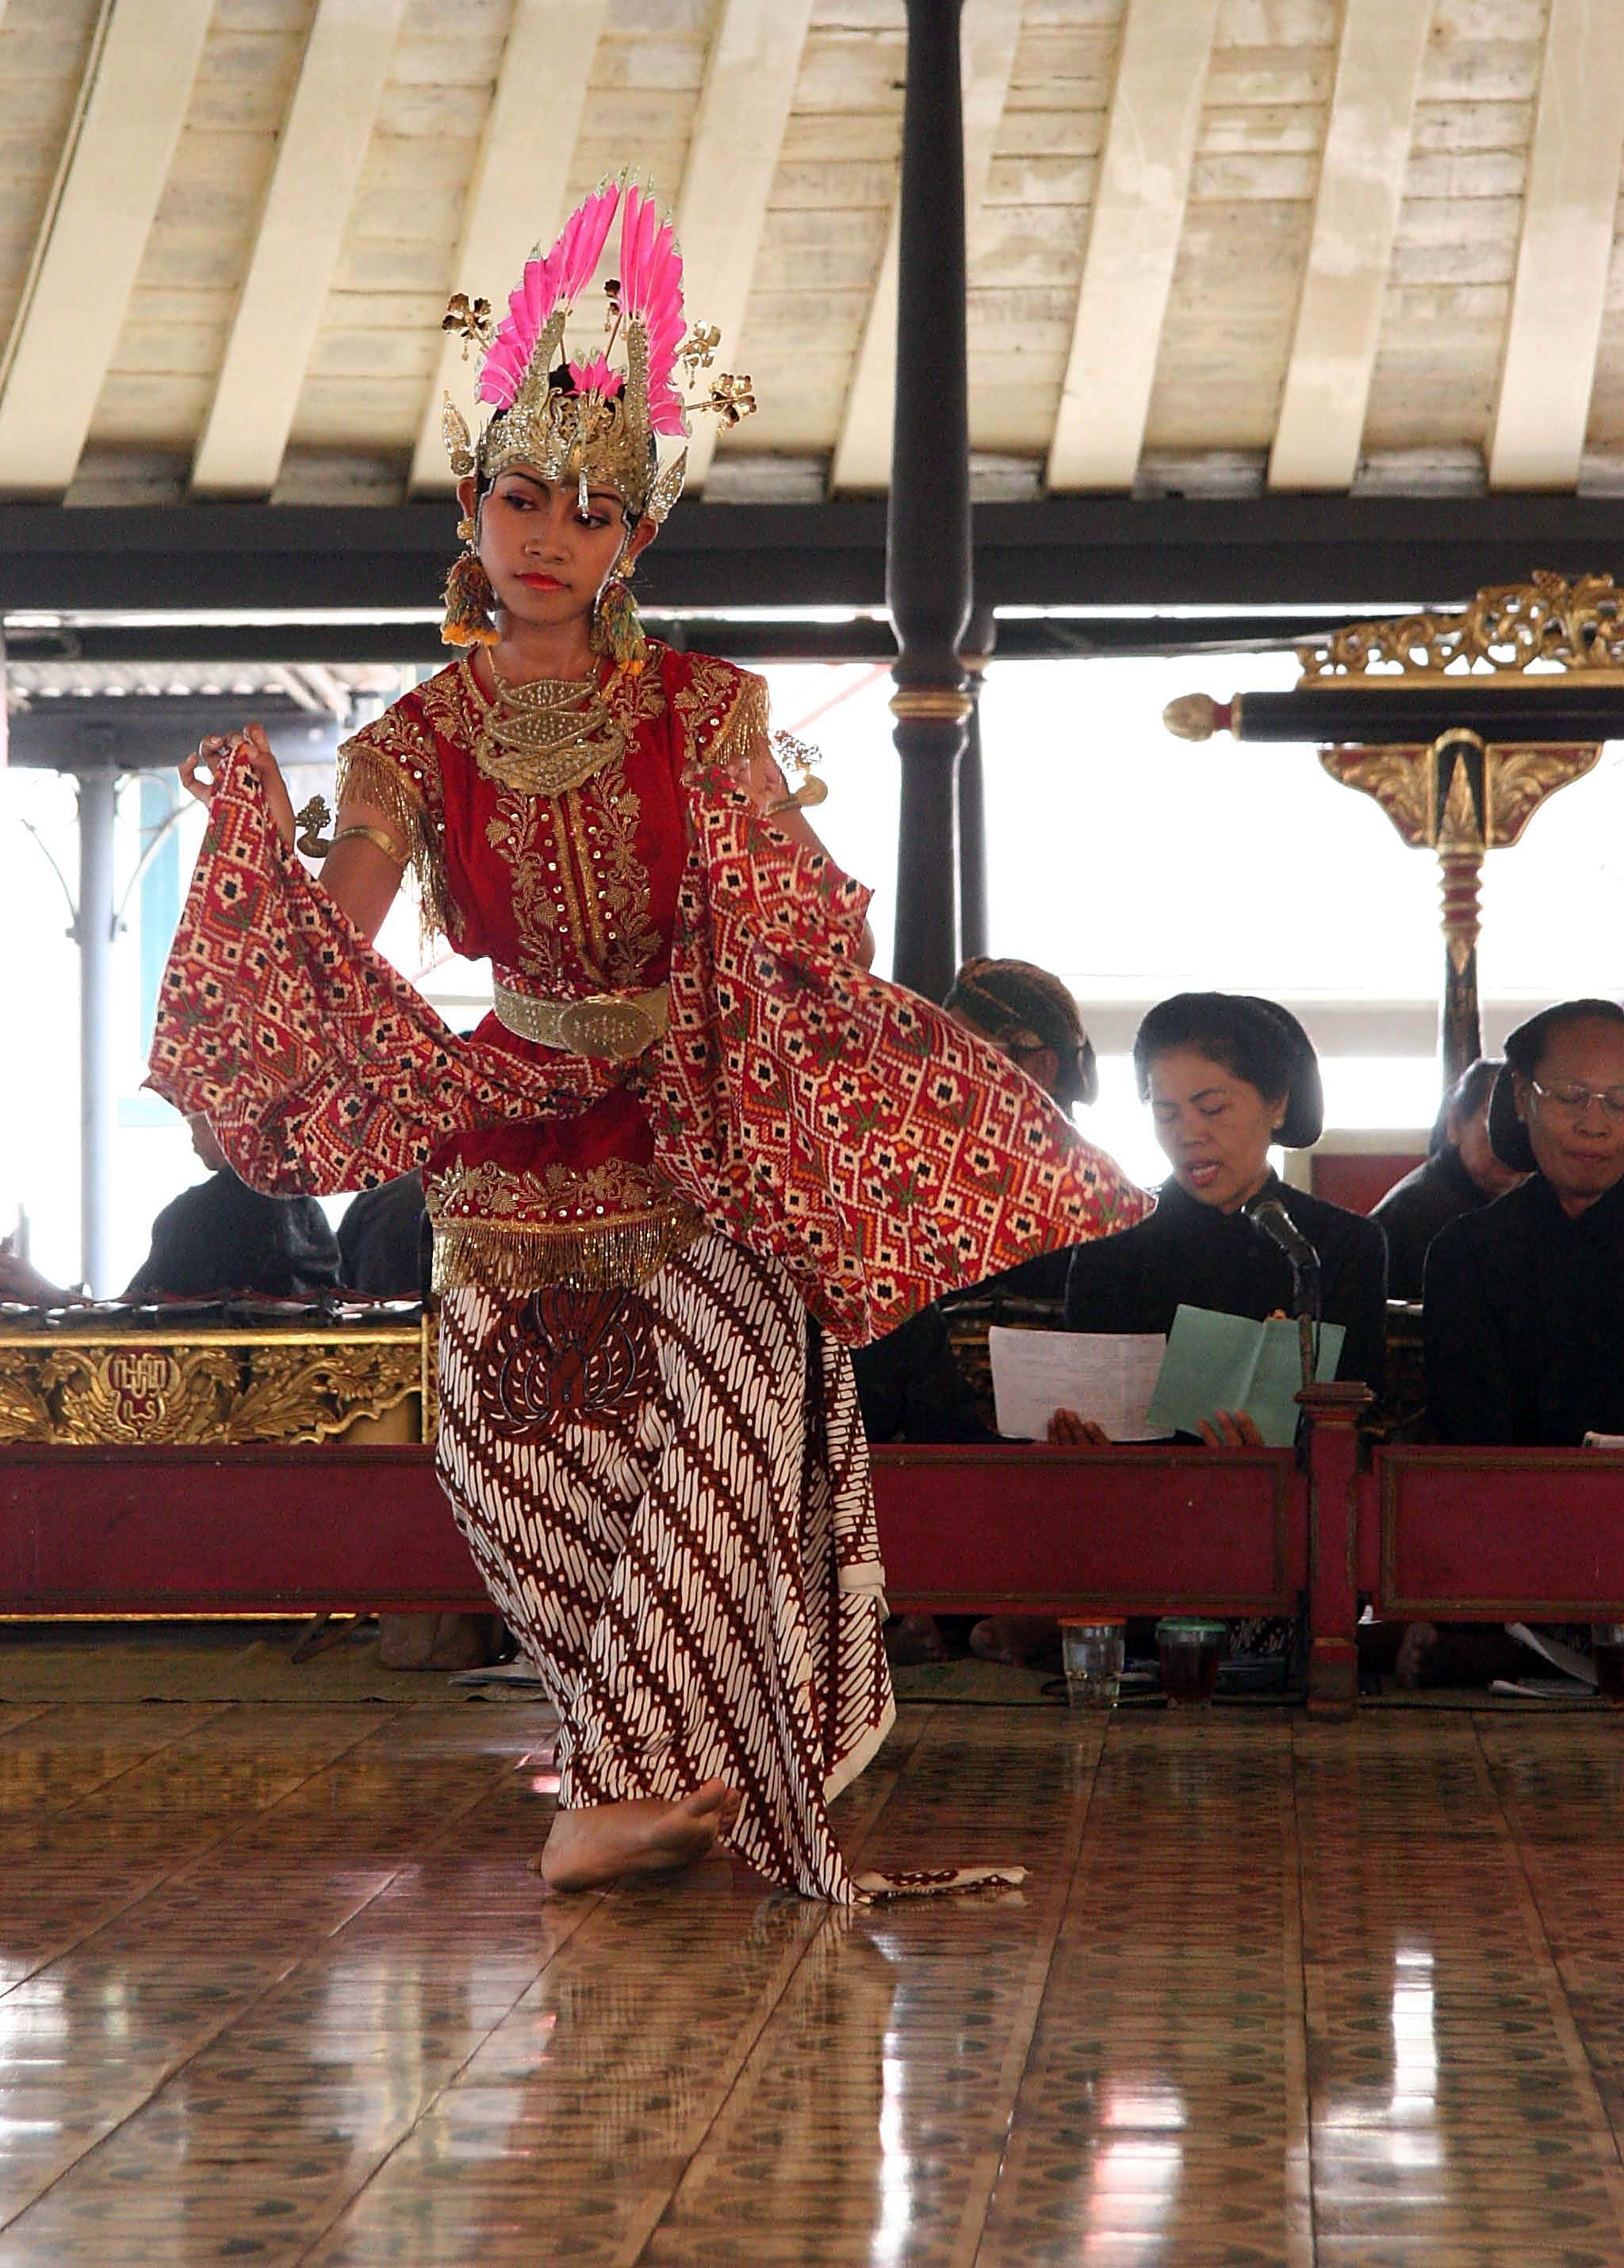 Balinese dancing in the sultan's palace, Java Yogyakarta Indonesia.jpg - Indonesia Java Yogyakarta. Balinese dancing in the sultan's palace